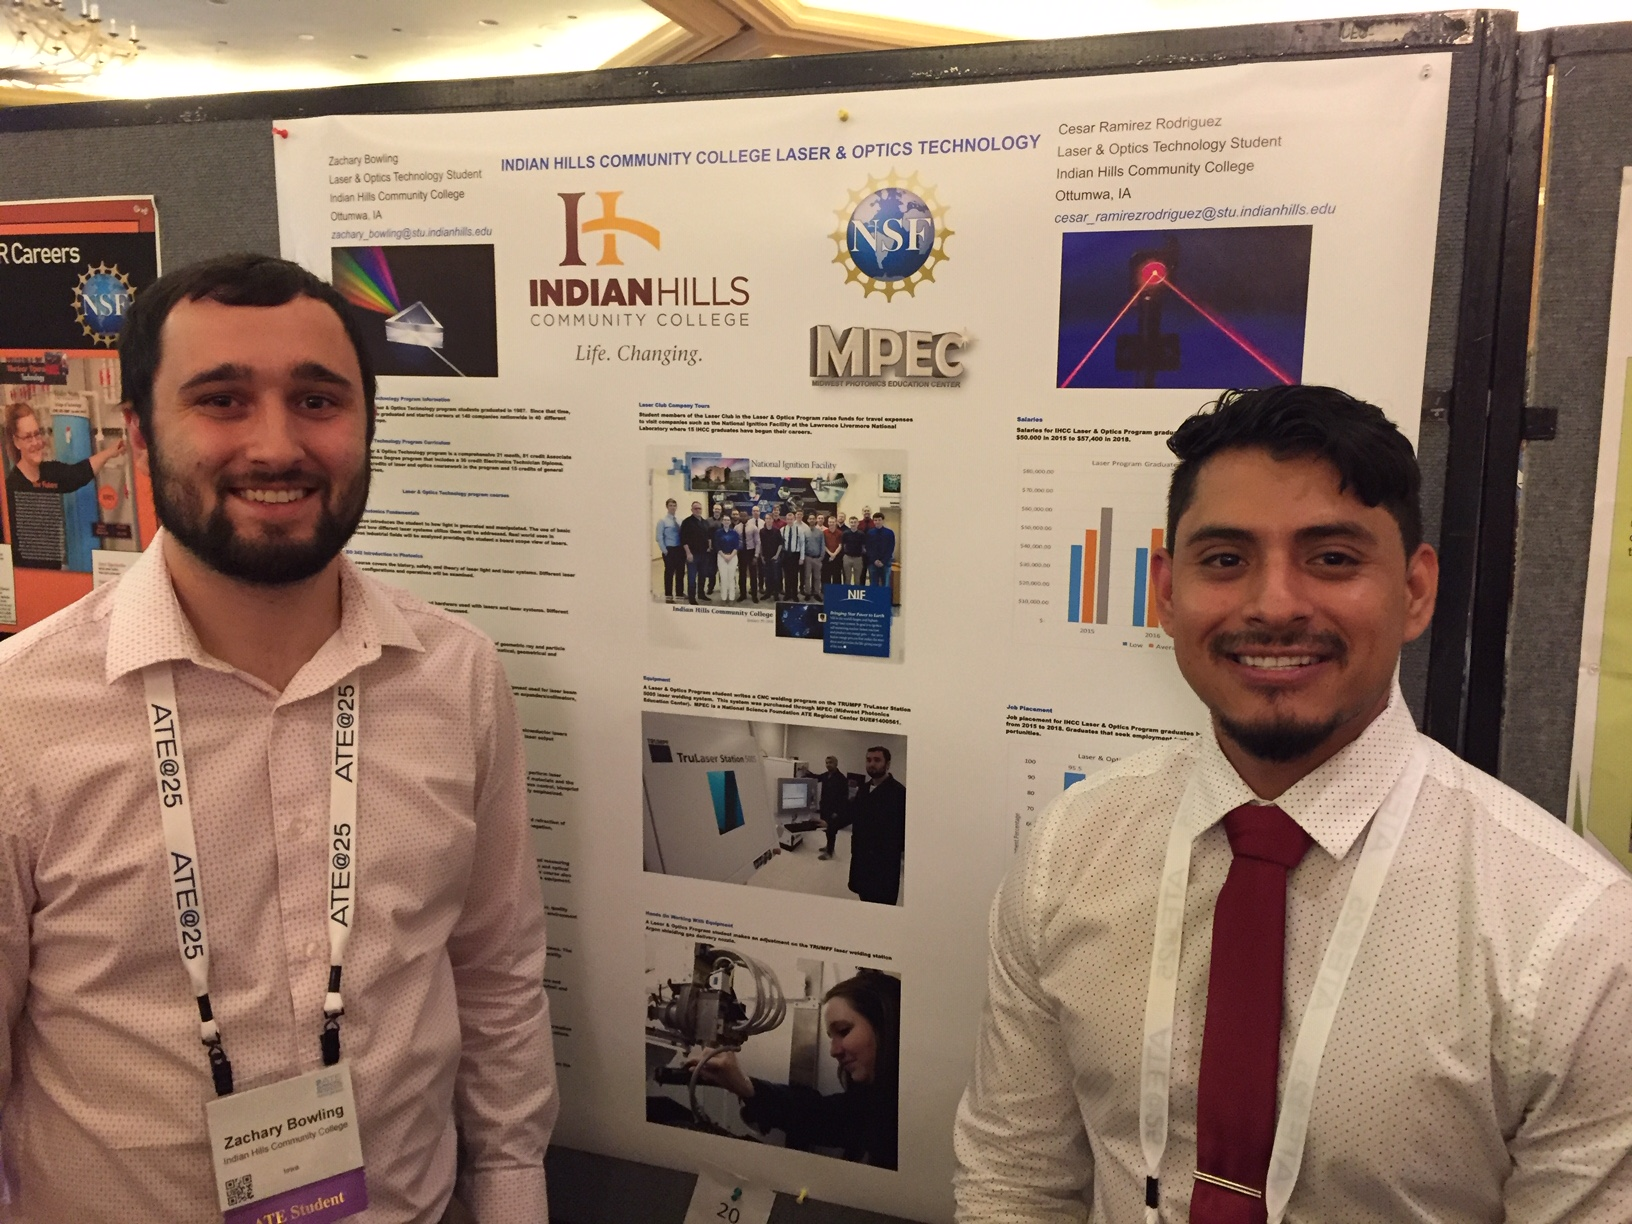 Zach and Cesar at ATE conference